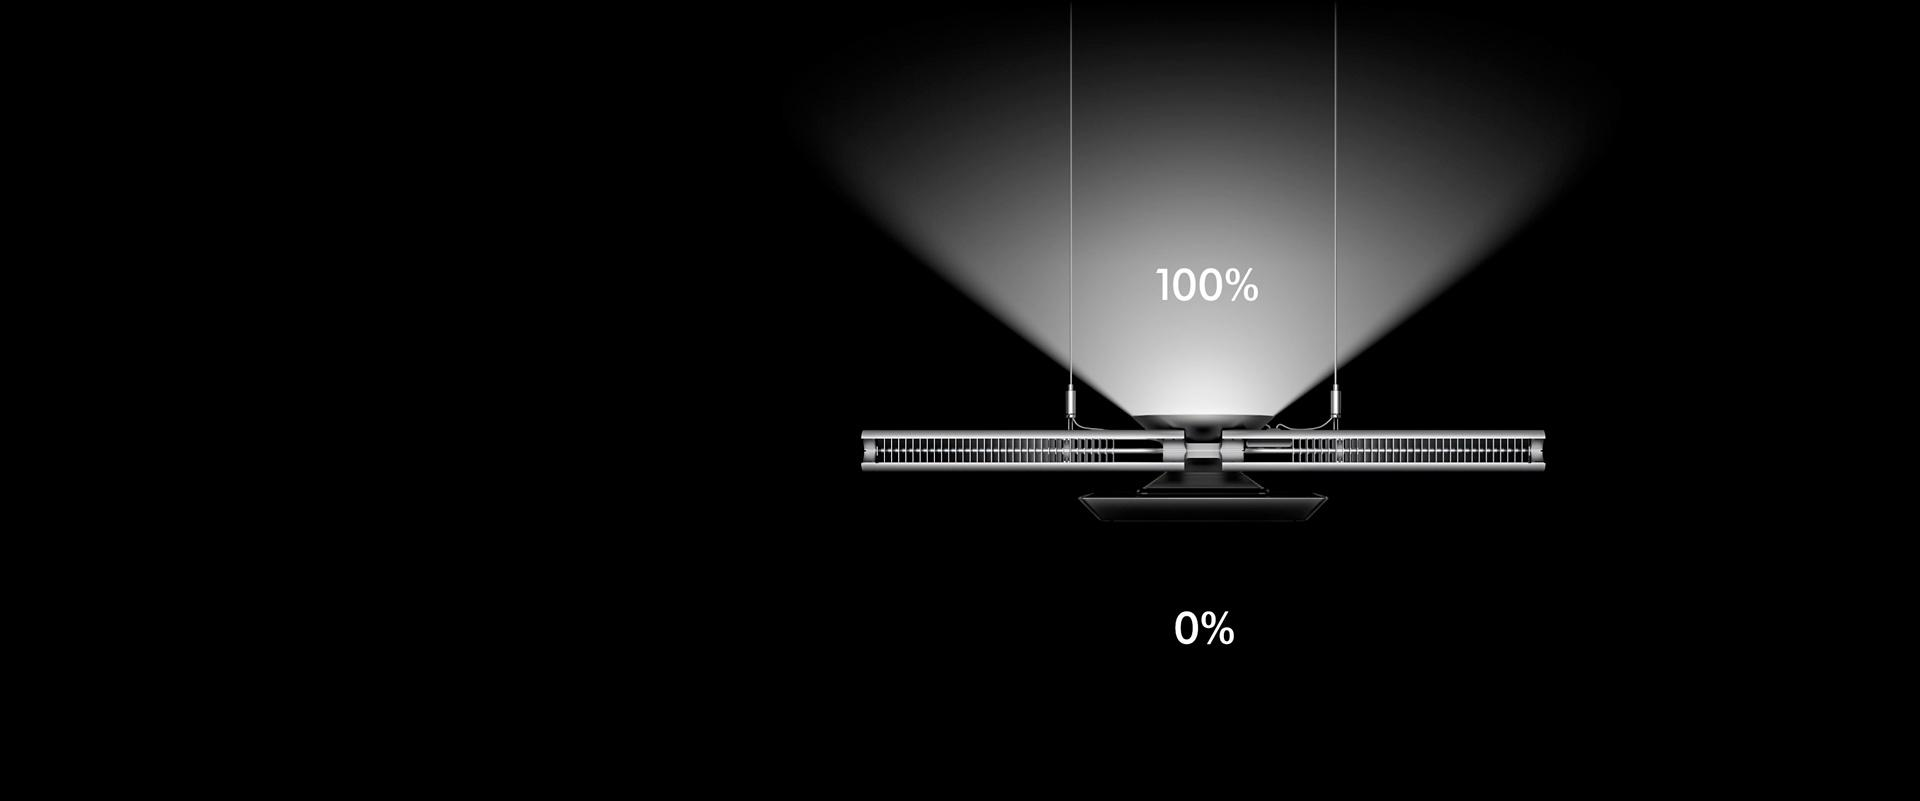 Demonstration of Cu-Beam Duo light providing solely up-light